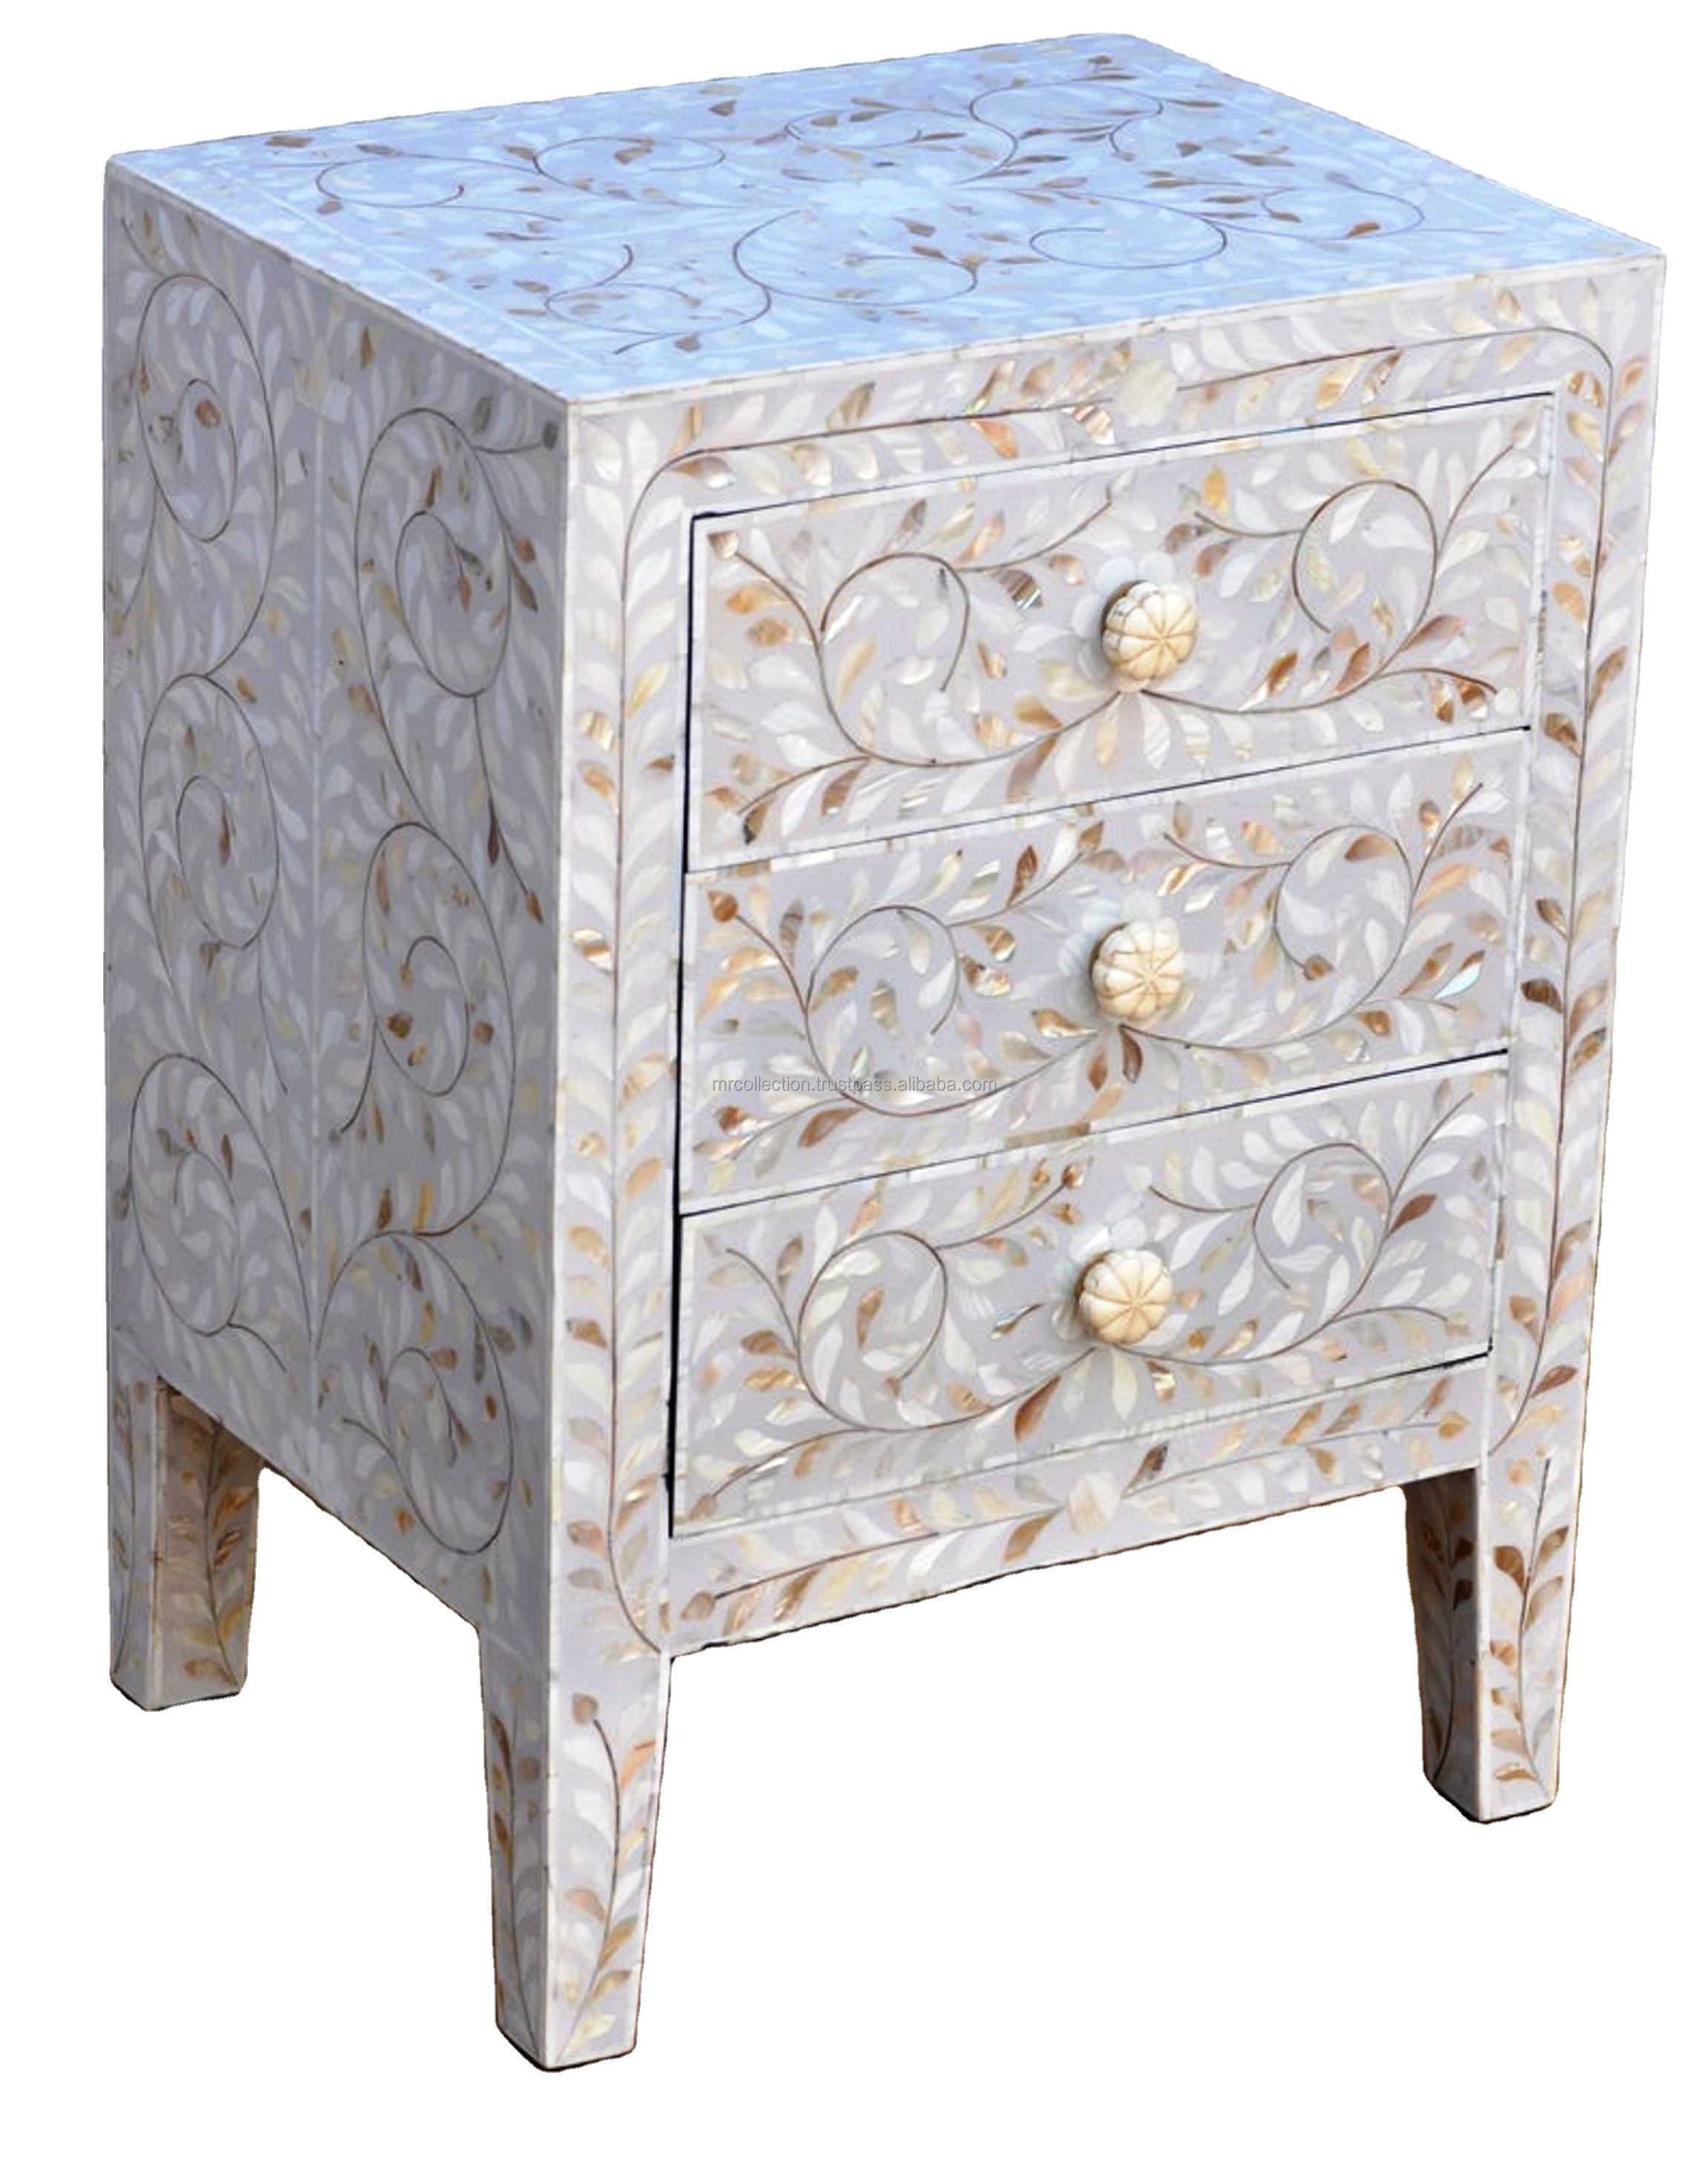 Handmade Mother Of Pearl Inlay Wooden Modern Floral Pattern Bedside/Side table/Nightstand with 3 Drawer Furniture